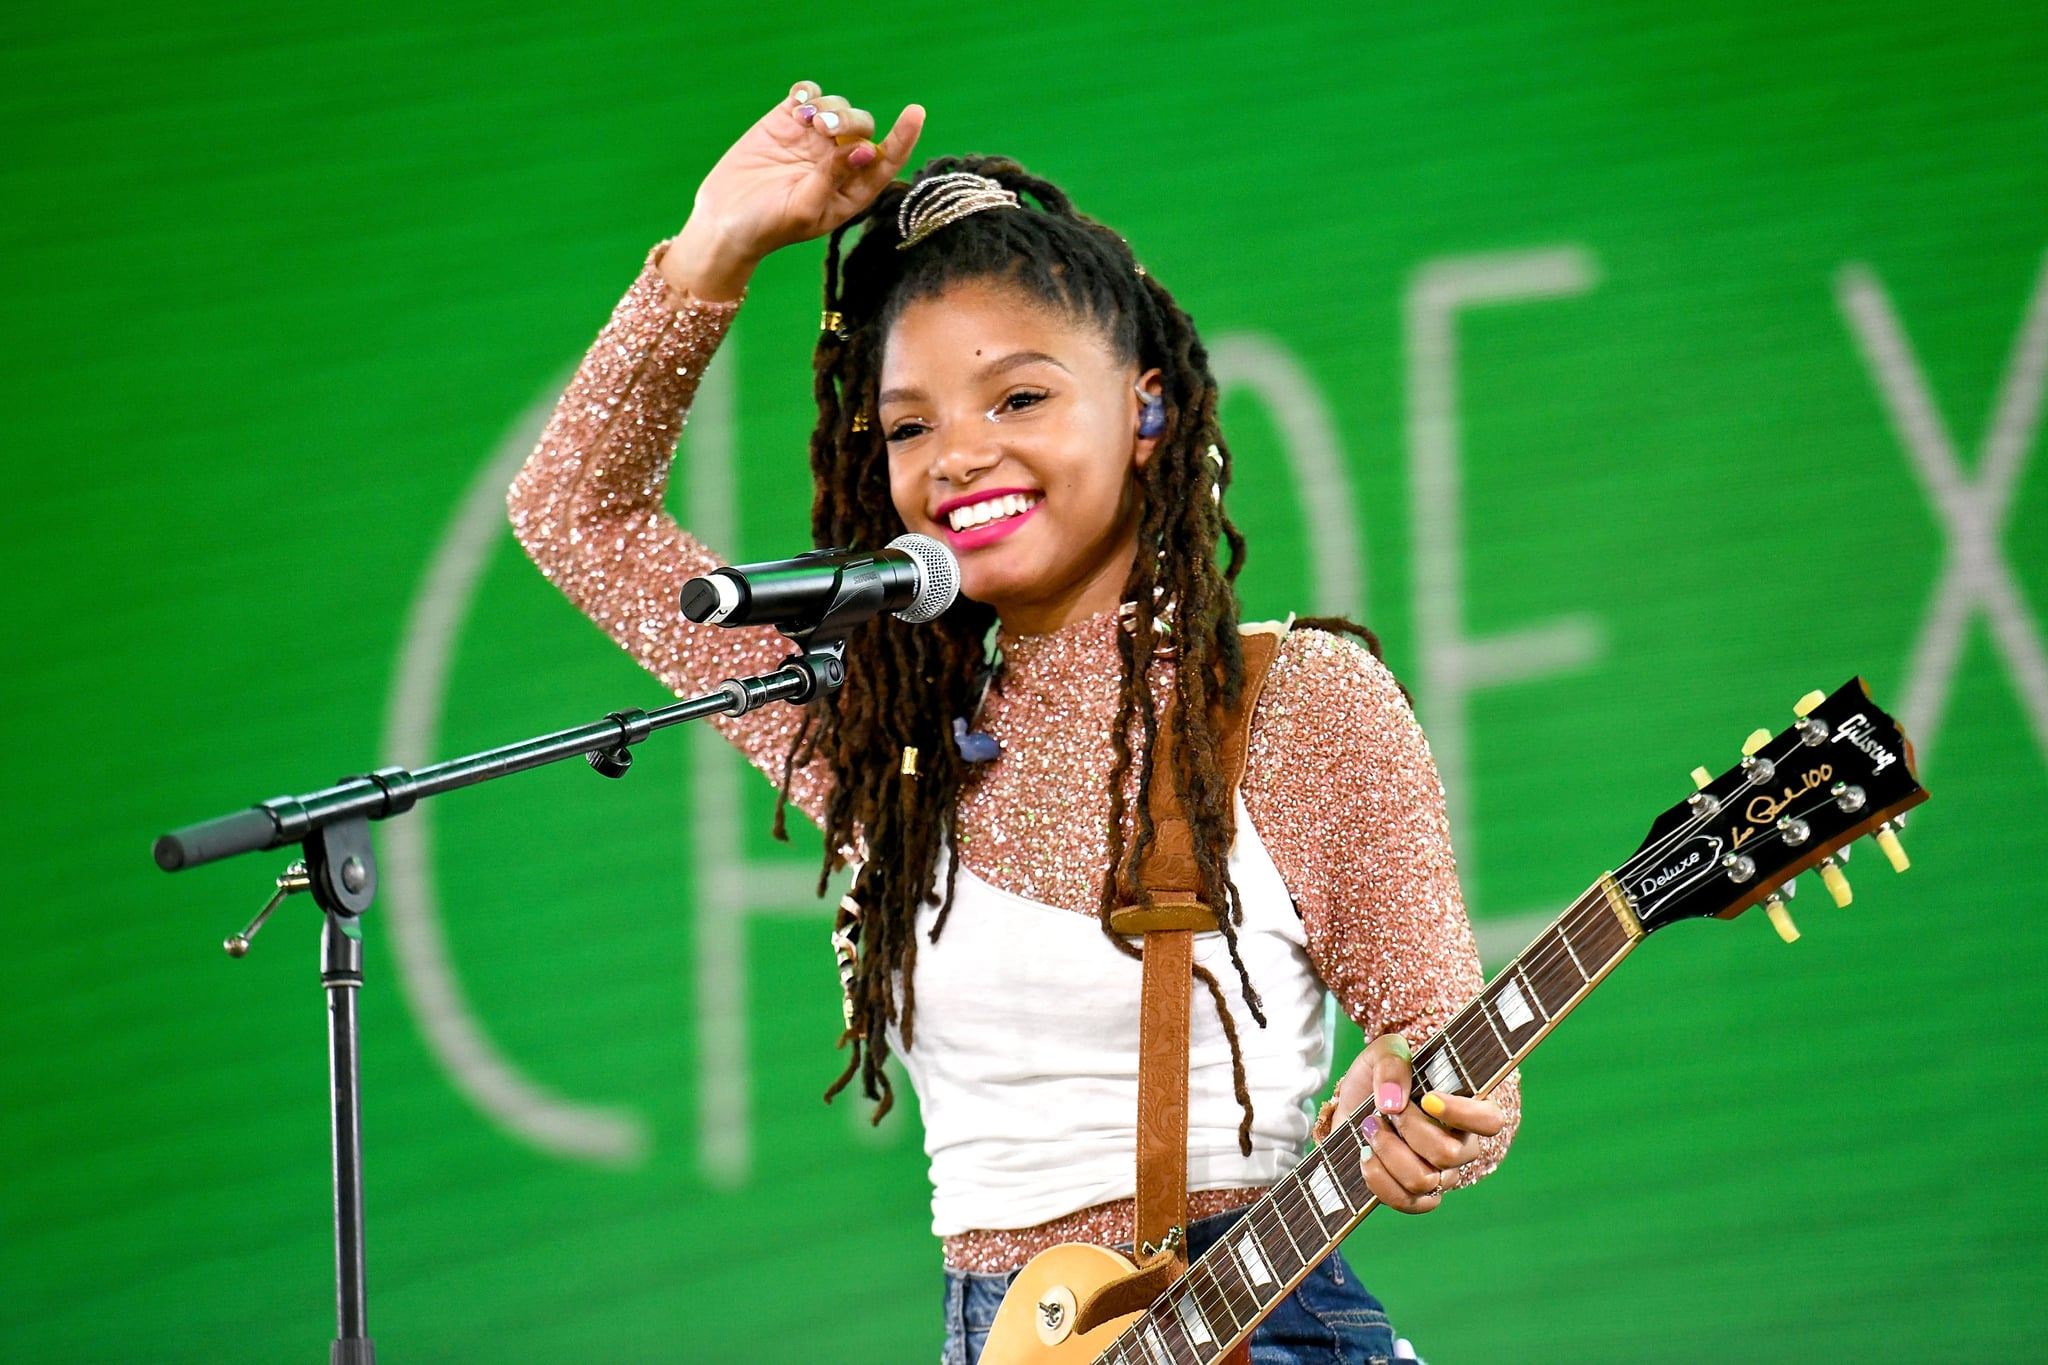 INDIO, CA - APRIL 14:  Singer Halle Bailey of the duo Chloe x Halle performs on the Mojave stage during week 1, day 2 of the Coachella Valley Music and Arts Festival on April 14, 2018 in Indio, California.  (Photo by Scott Dudelson/Getty Images for Coachella  )